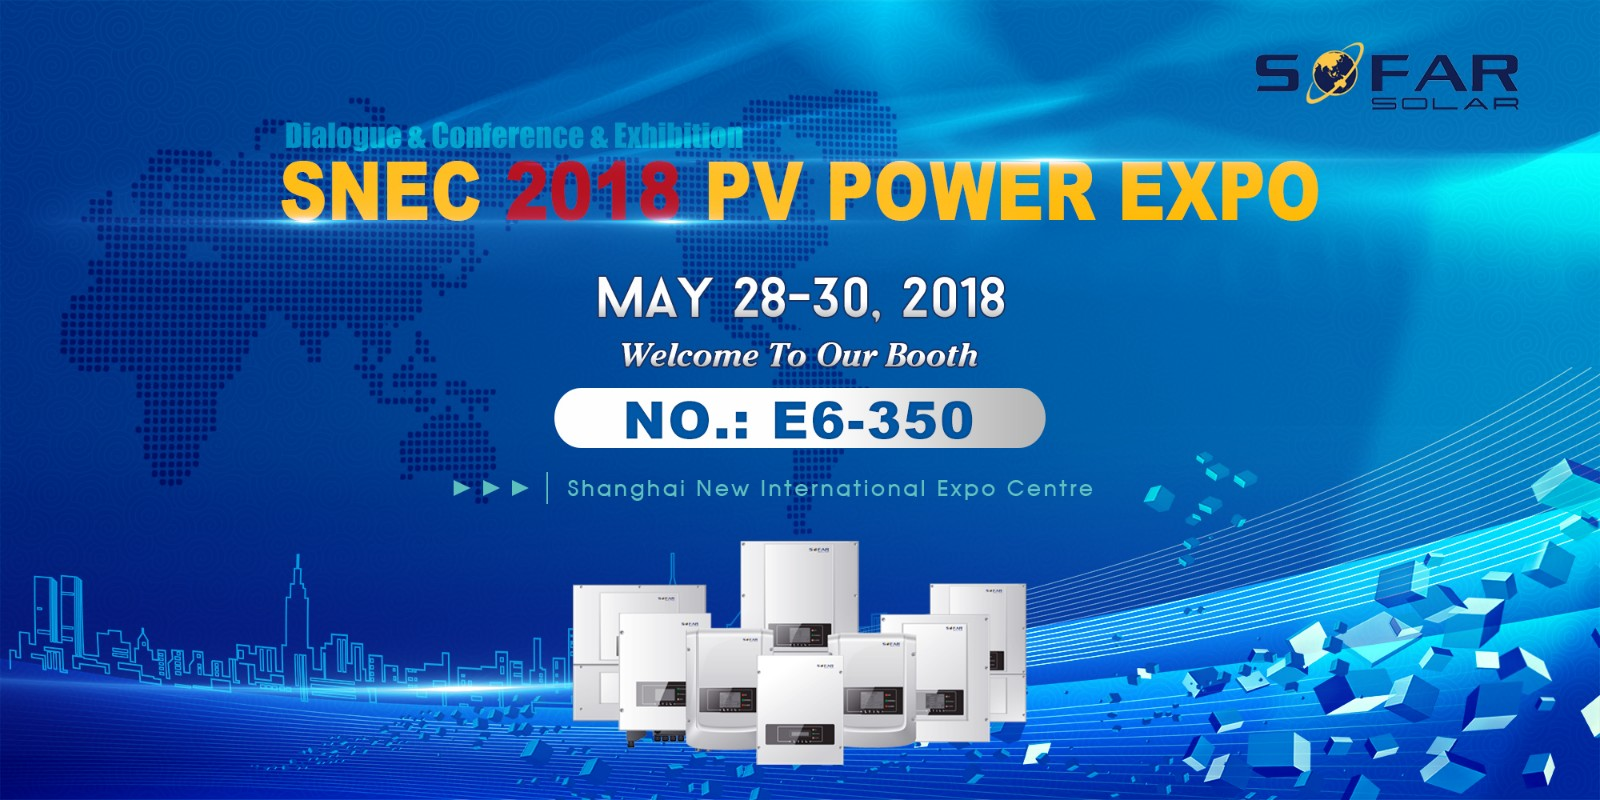 SNEC 2018 PV POWER EXPO, Shanghai